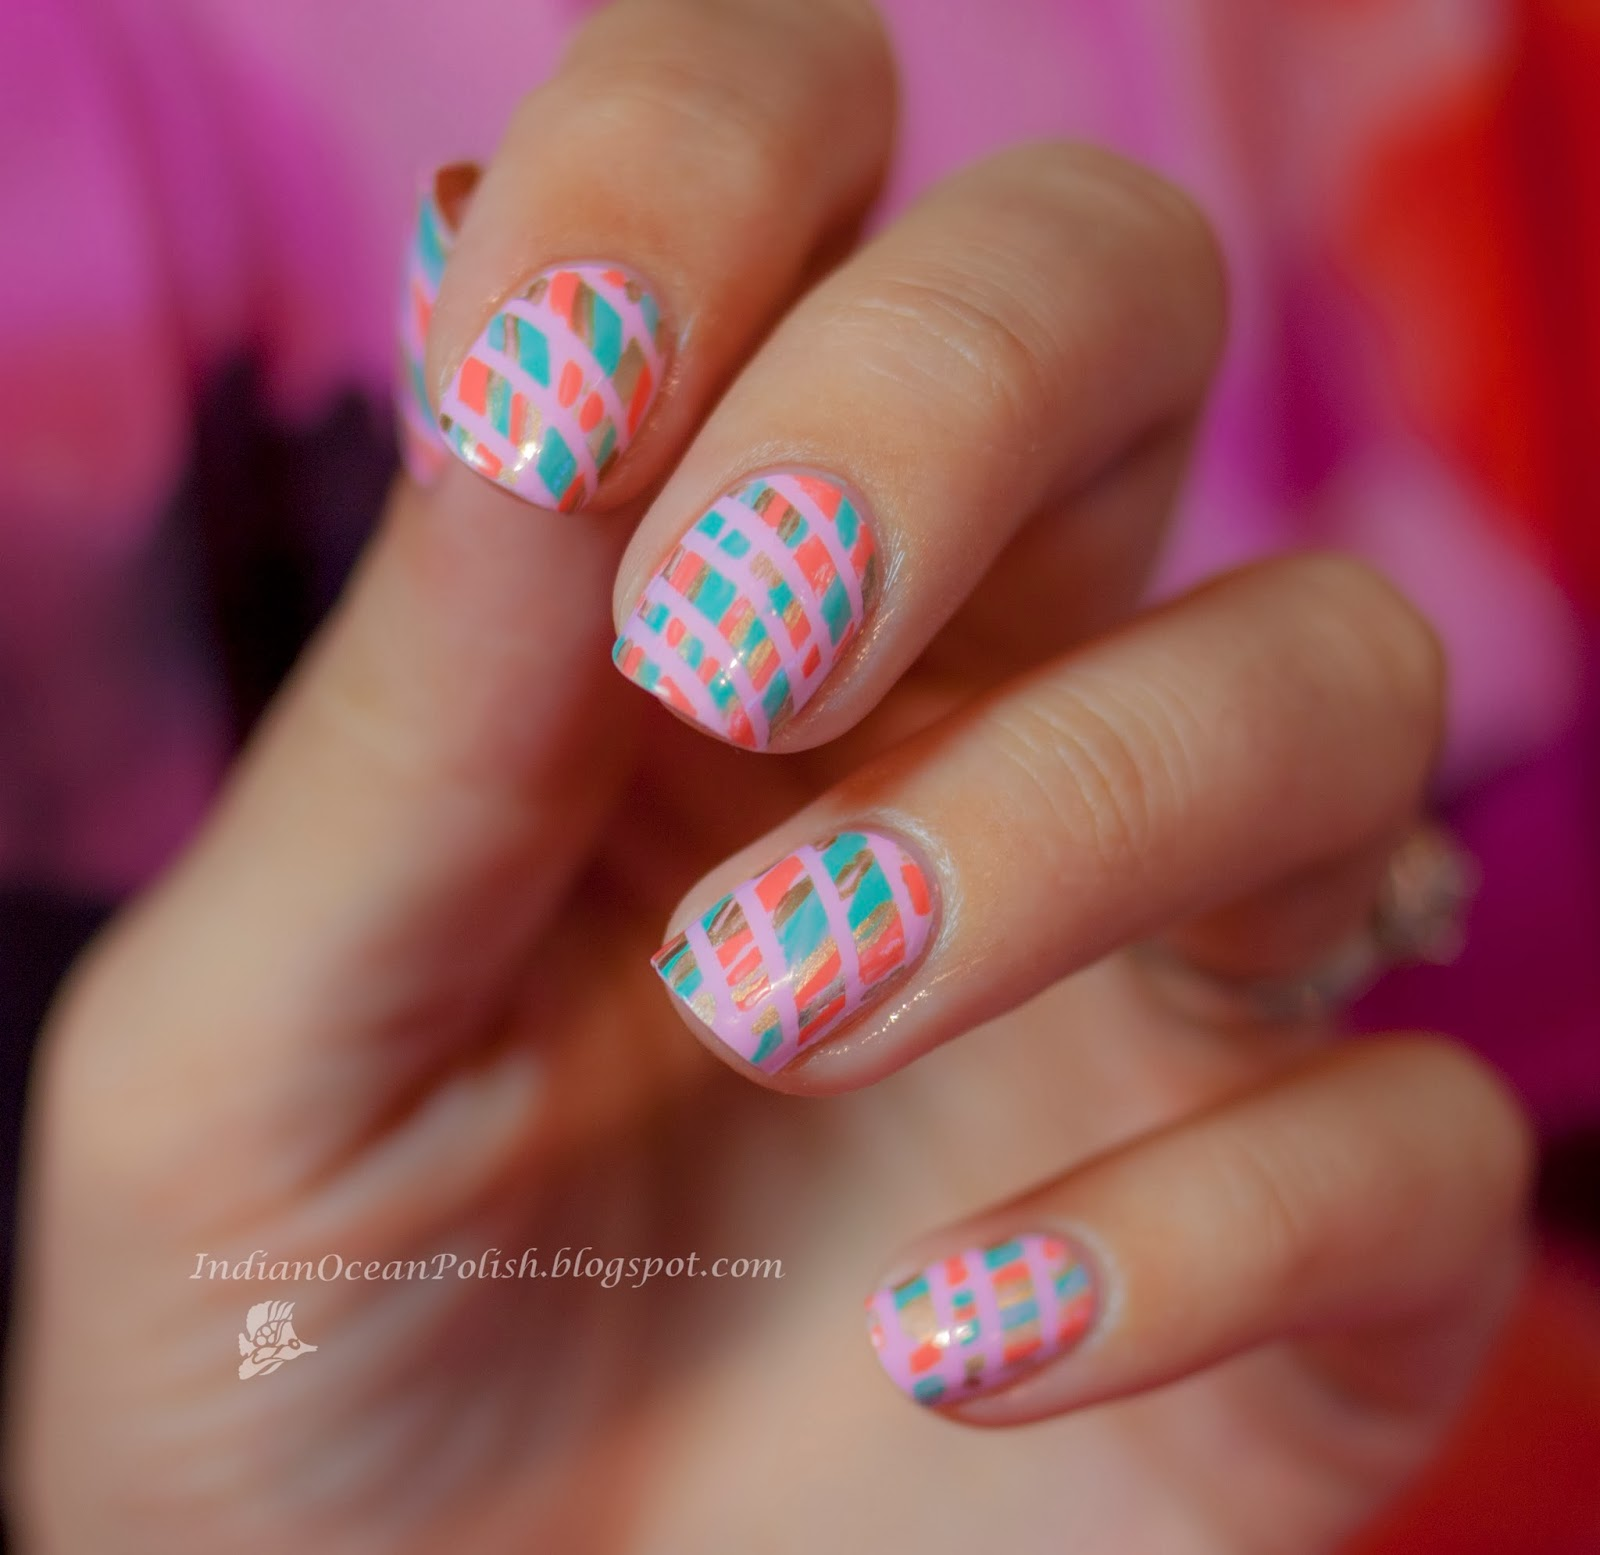 Indian Ocean Polish: Striping Tape Mani with OPI Mod About You ...